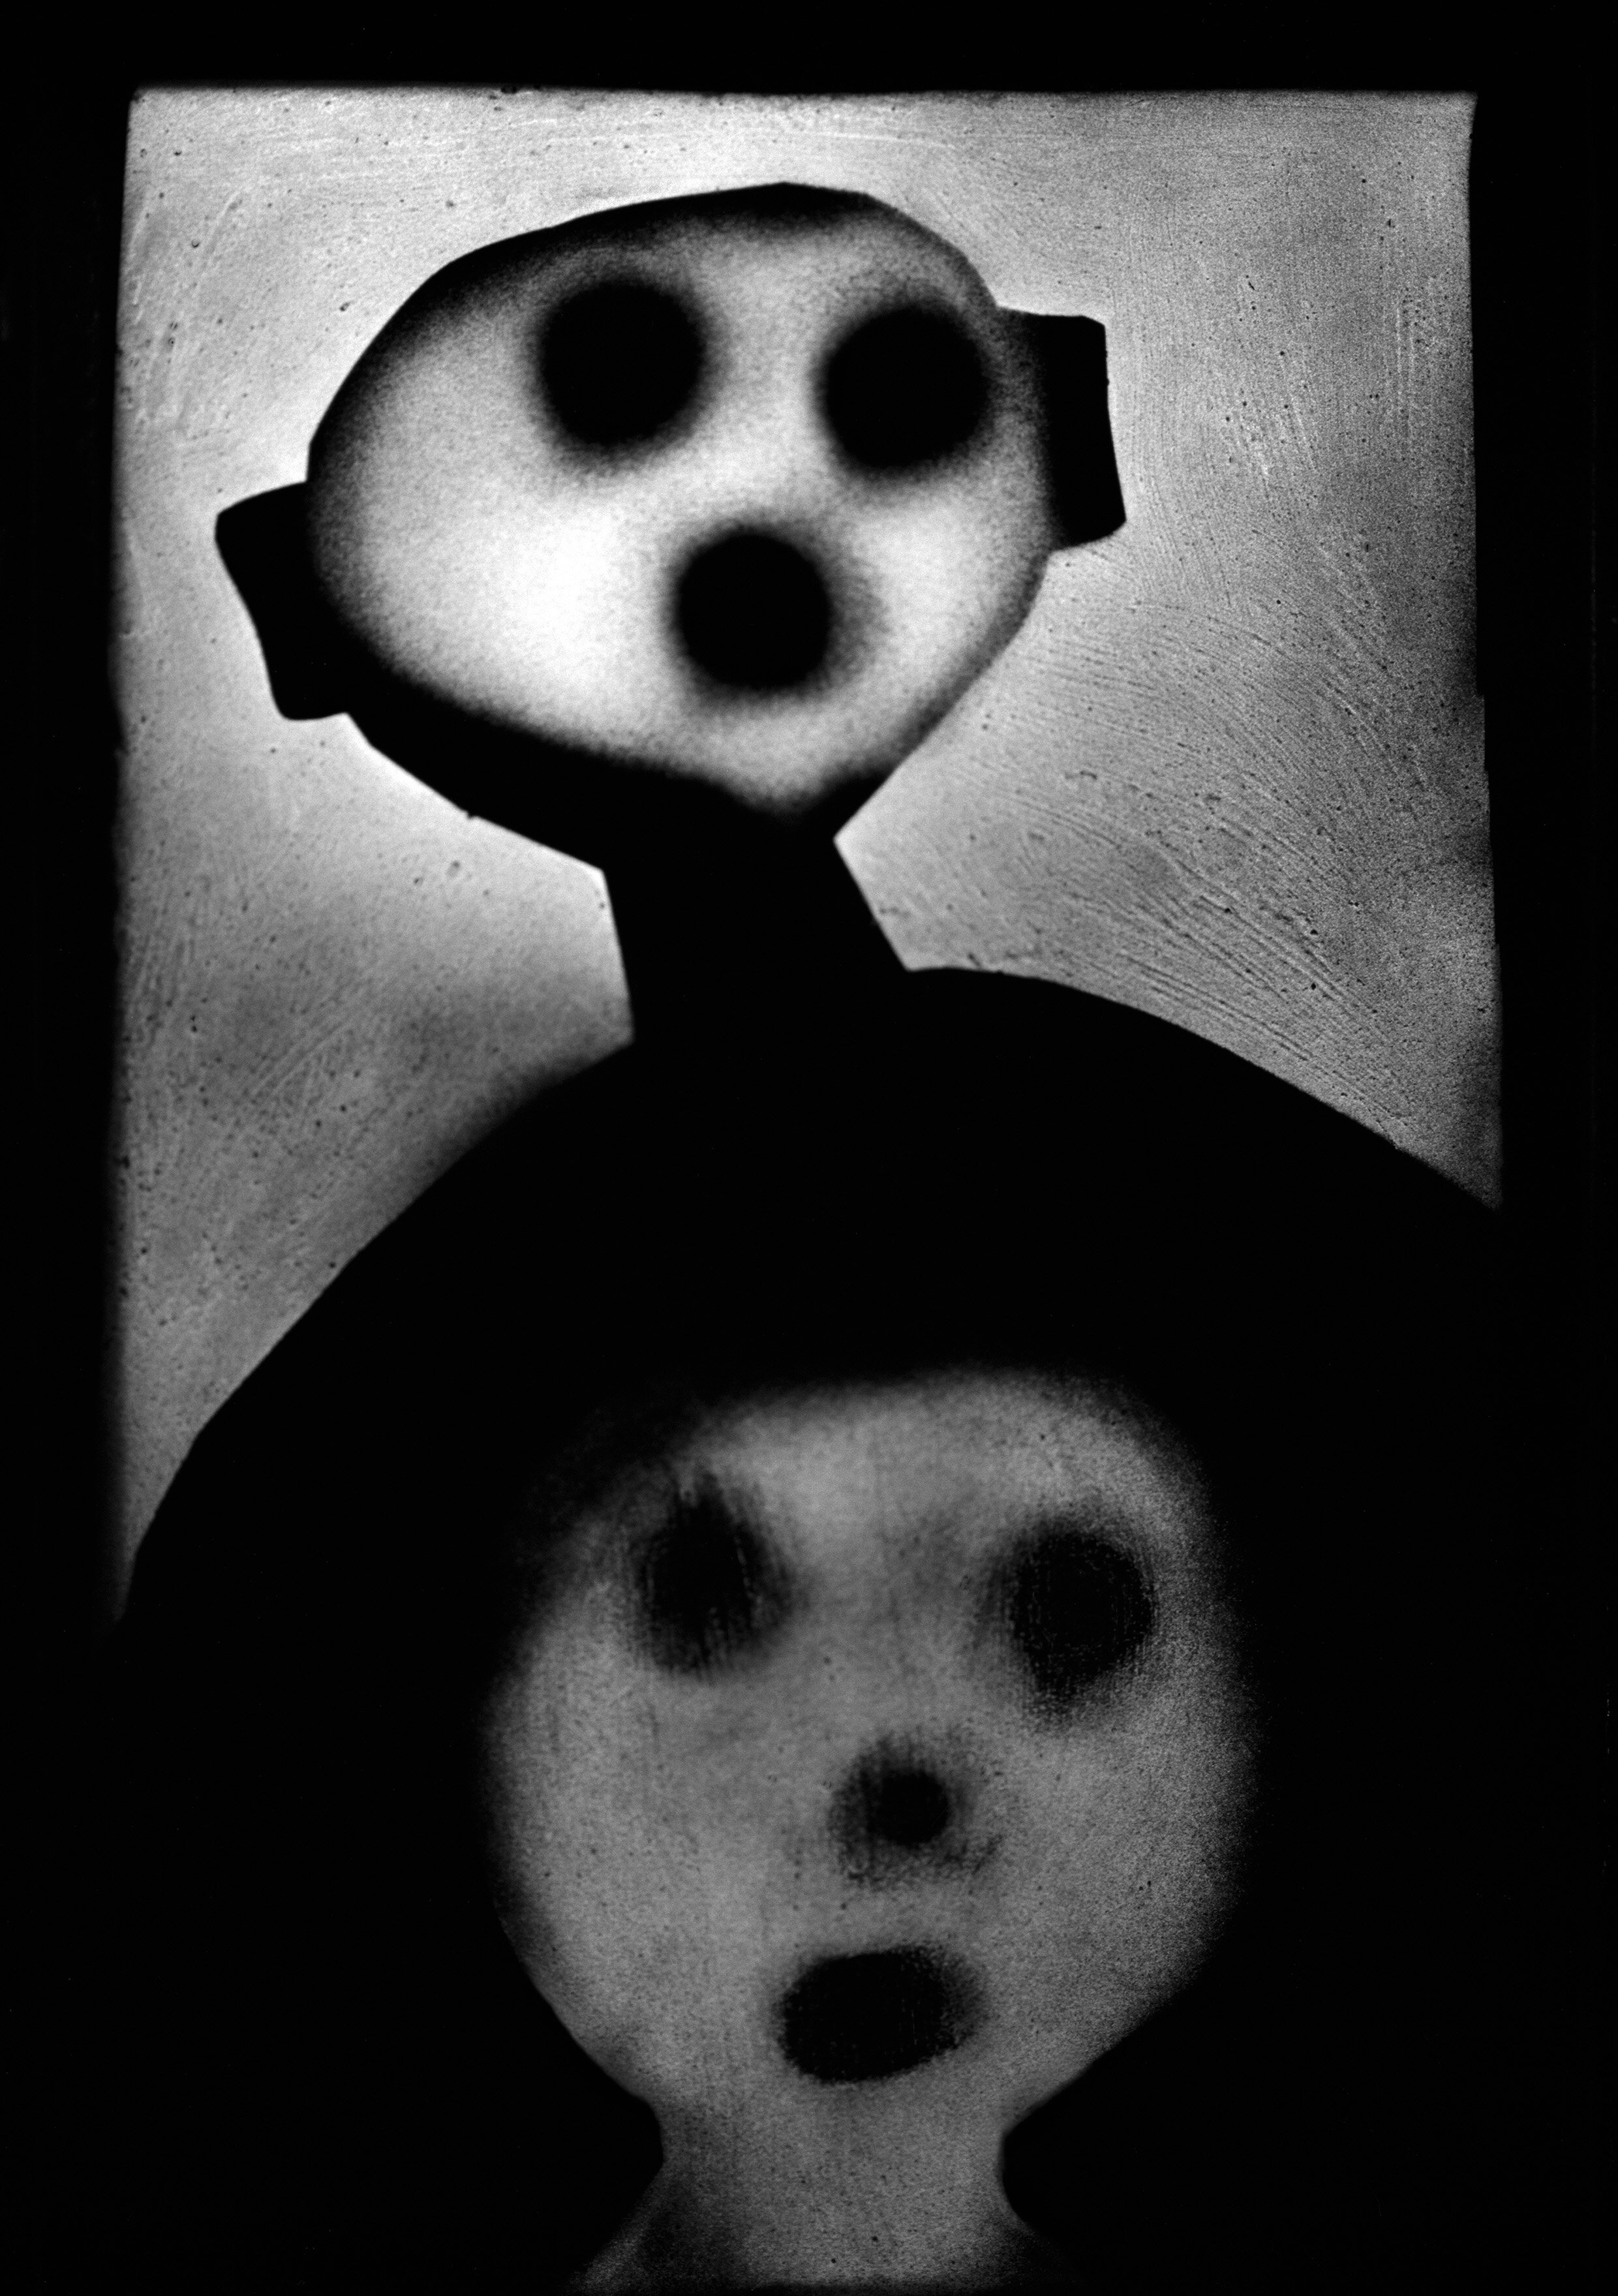 ROGER BALLEN  The Back of the Mind 2012  Archival Pigment Print 81 x 112 cm - Limited edition of 6.   INQUIRE